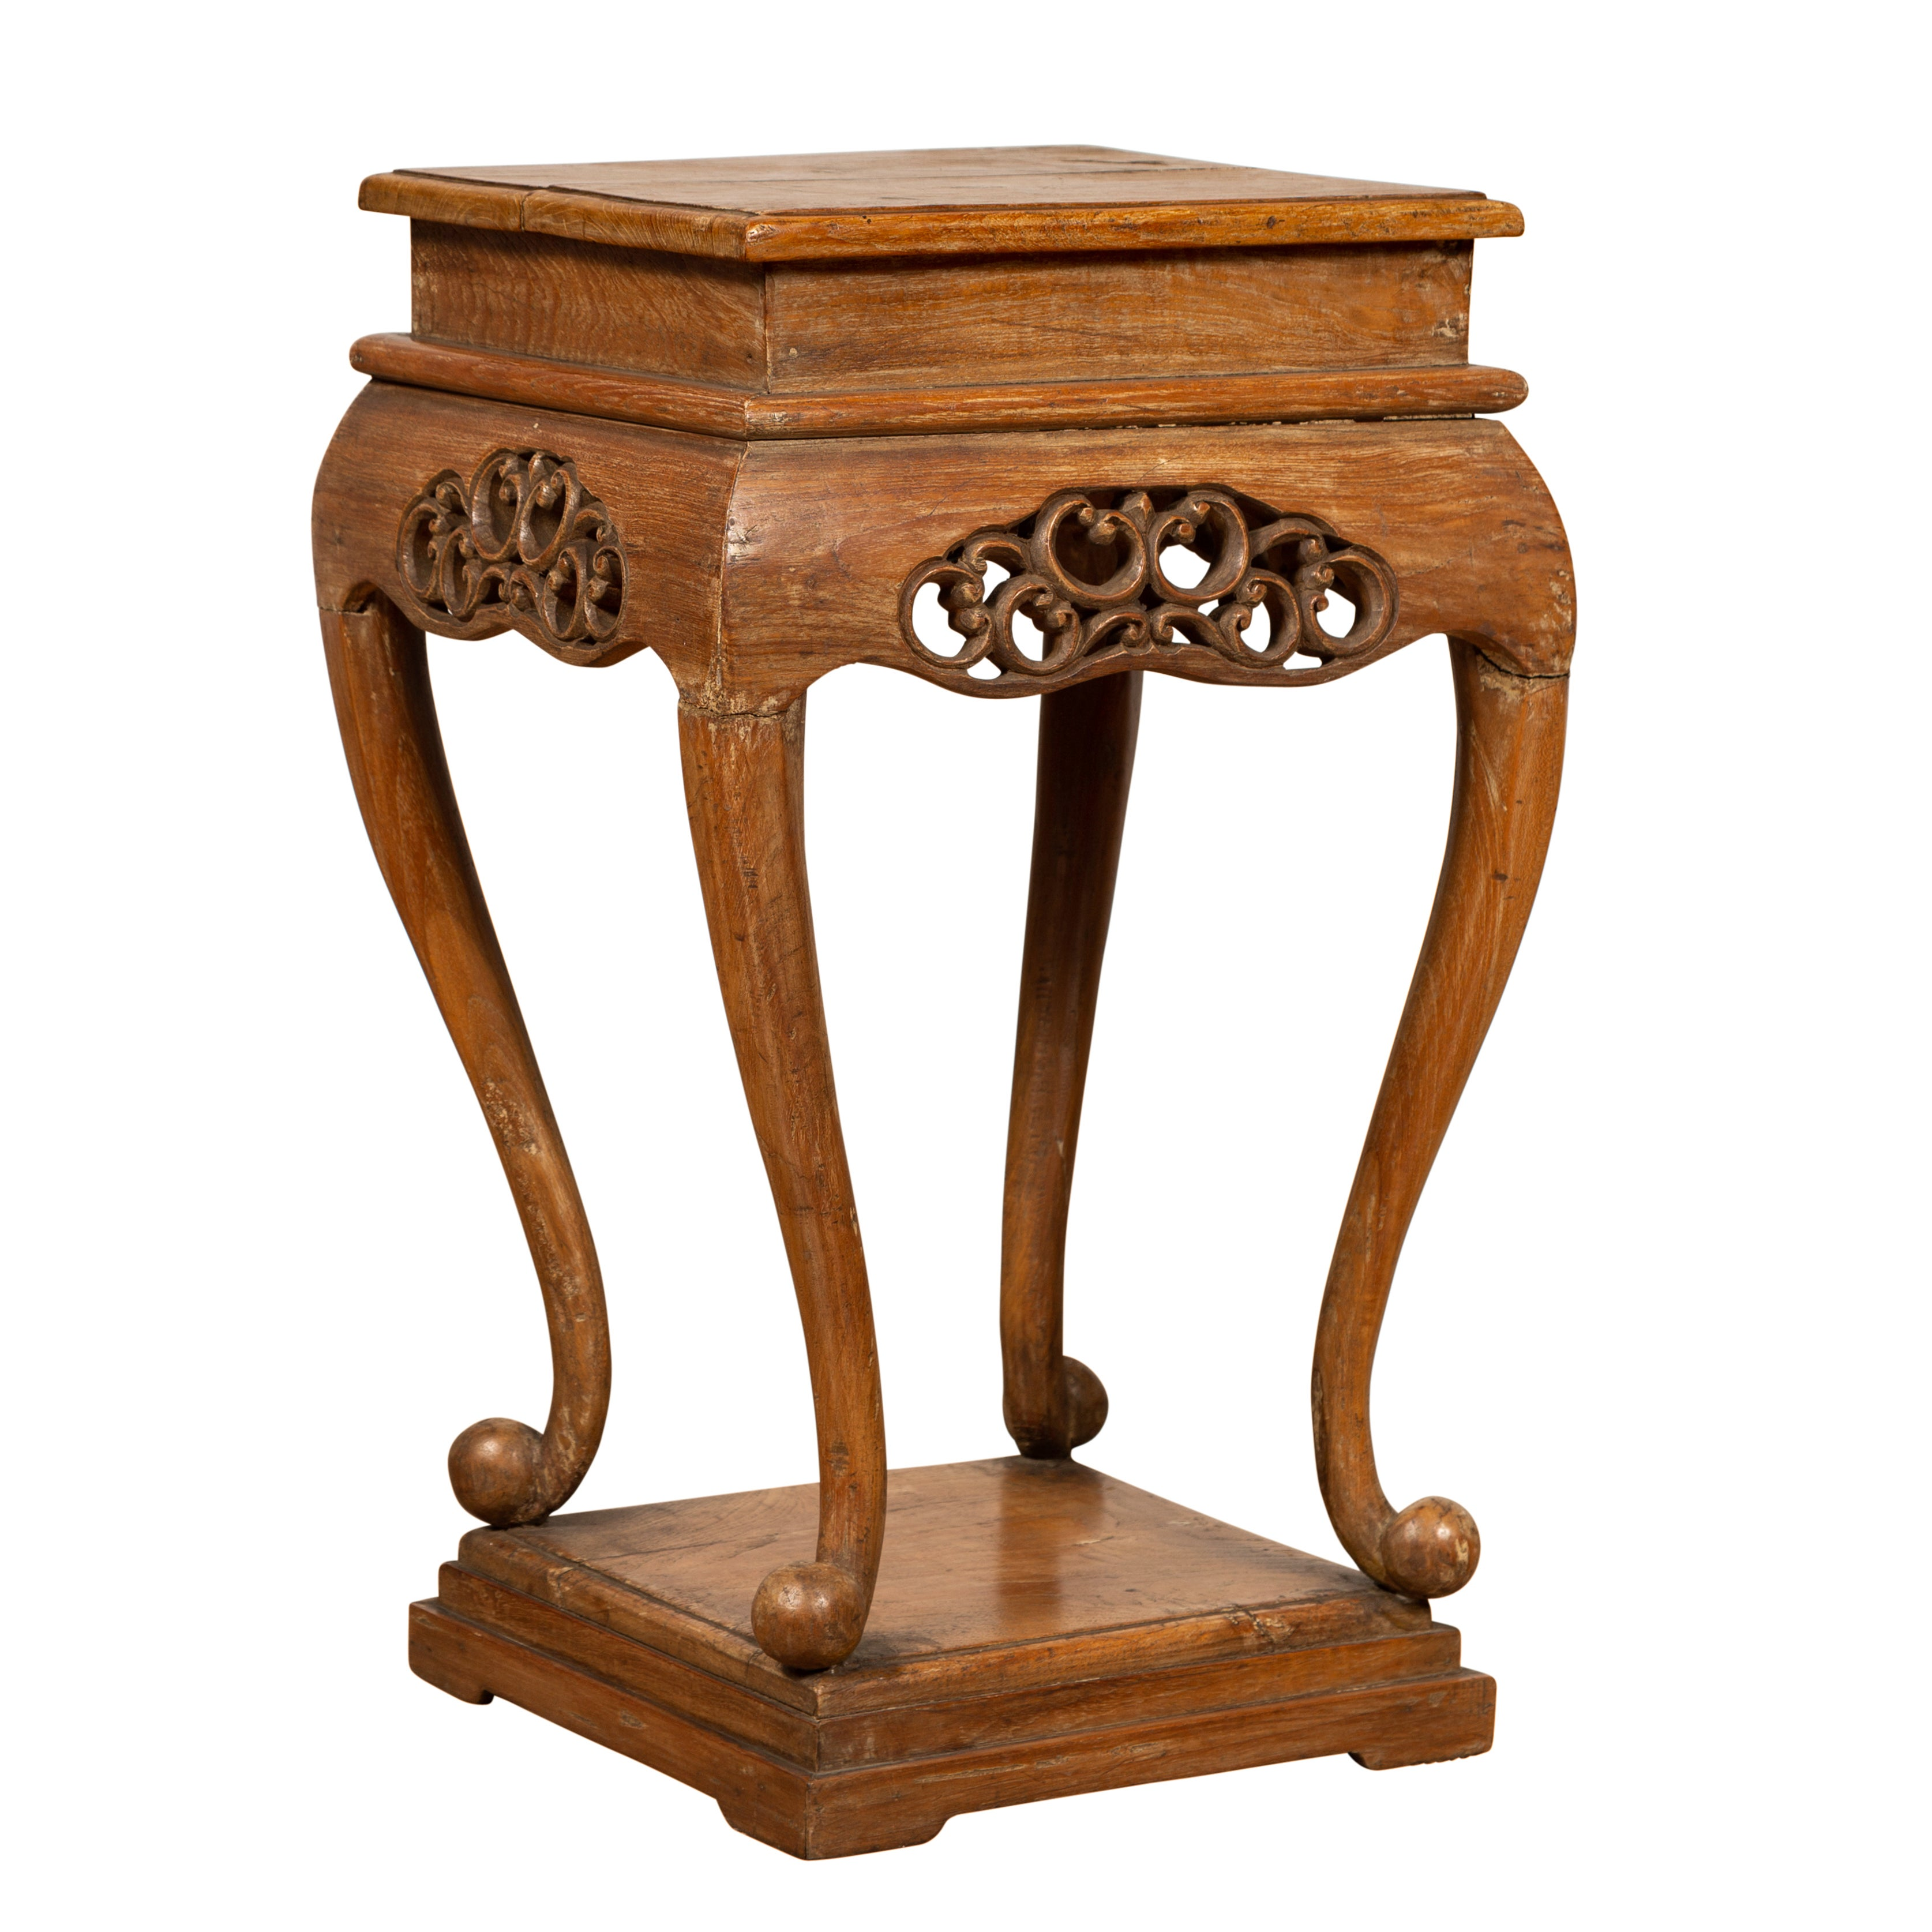 Chinese Ming Style Wooden Incense Stand with Cabriole Legs and Carved Apron